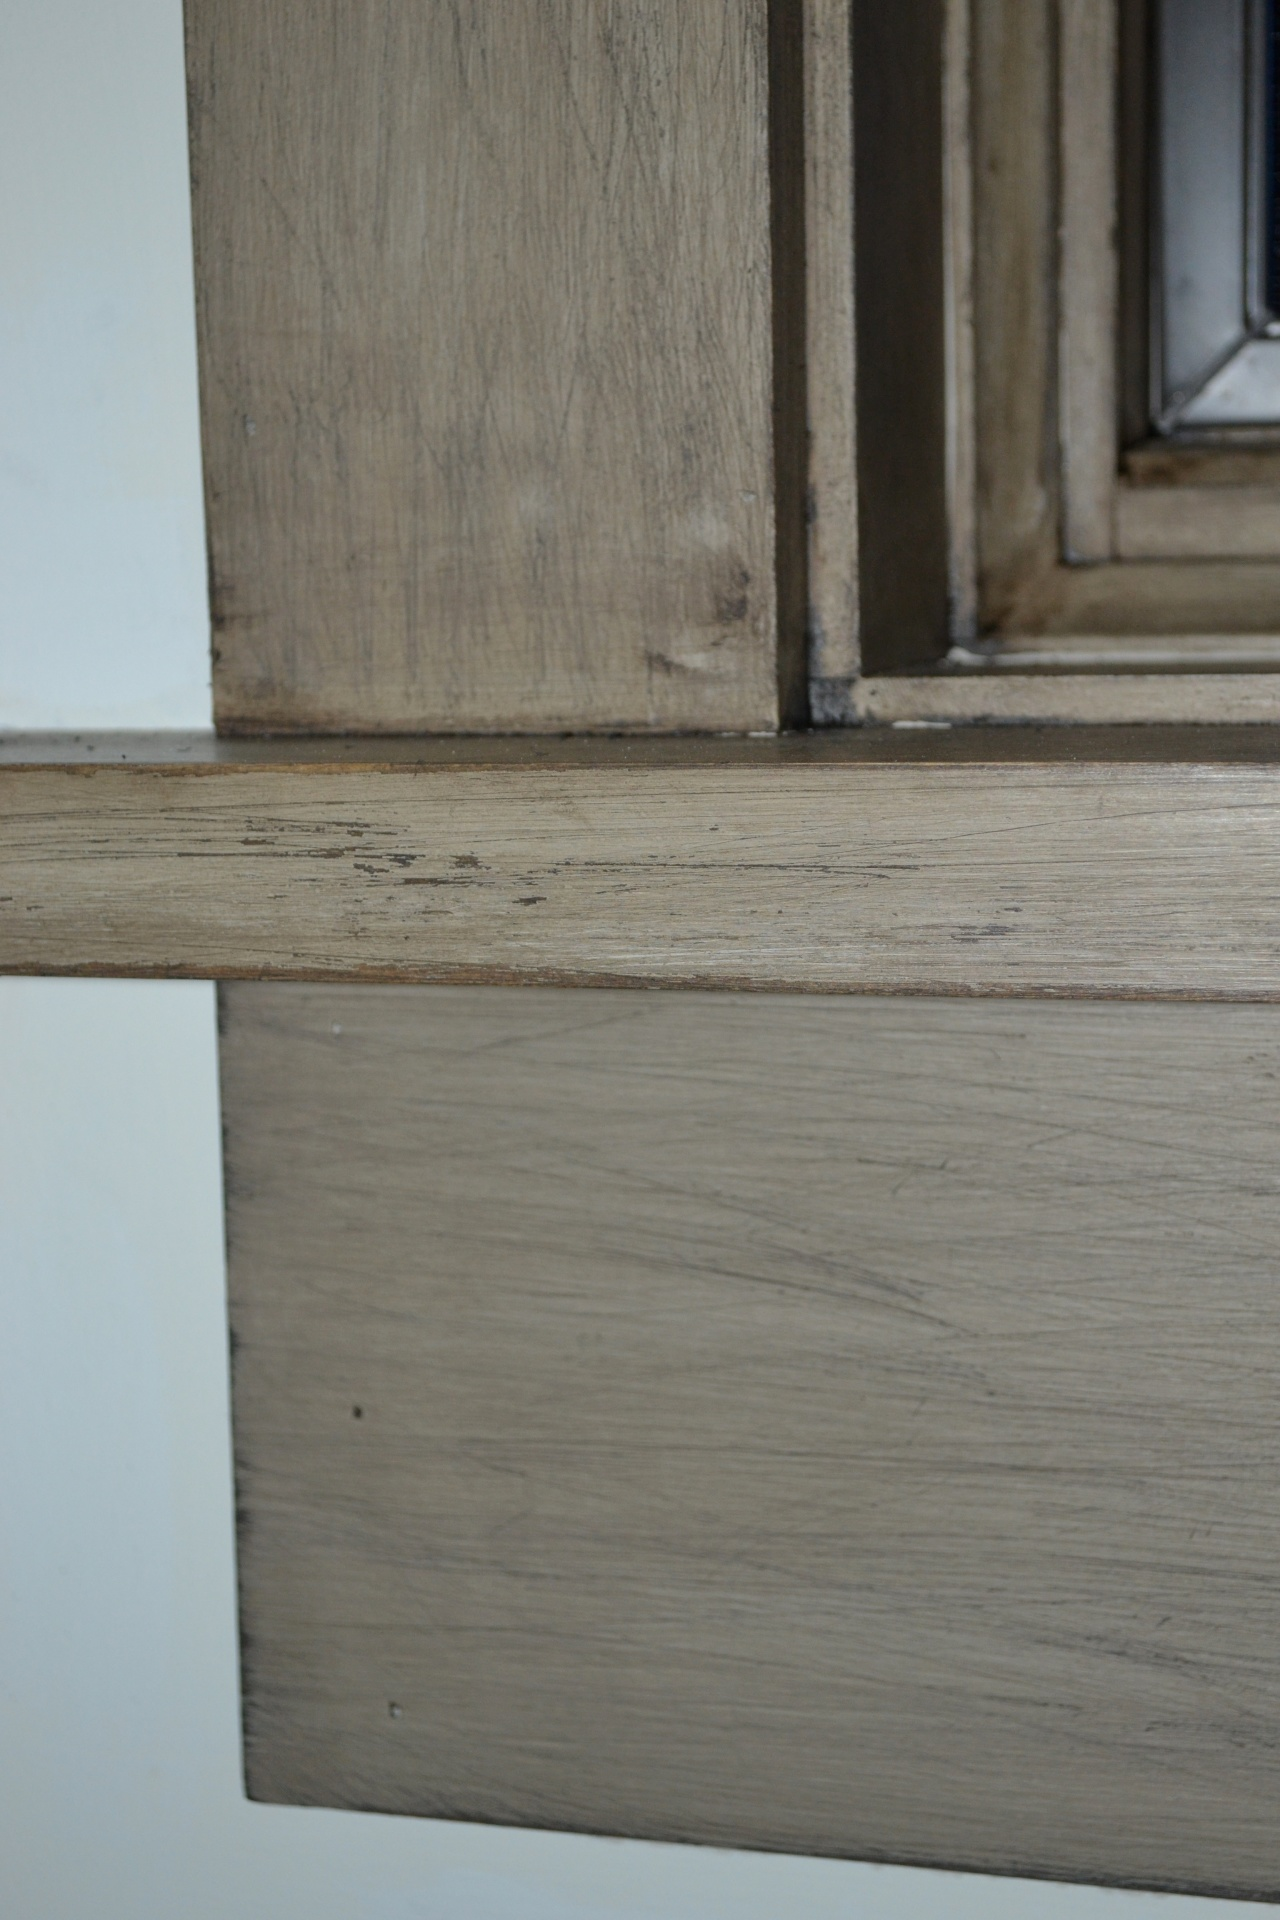 rustic finish on the window frame